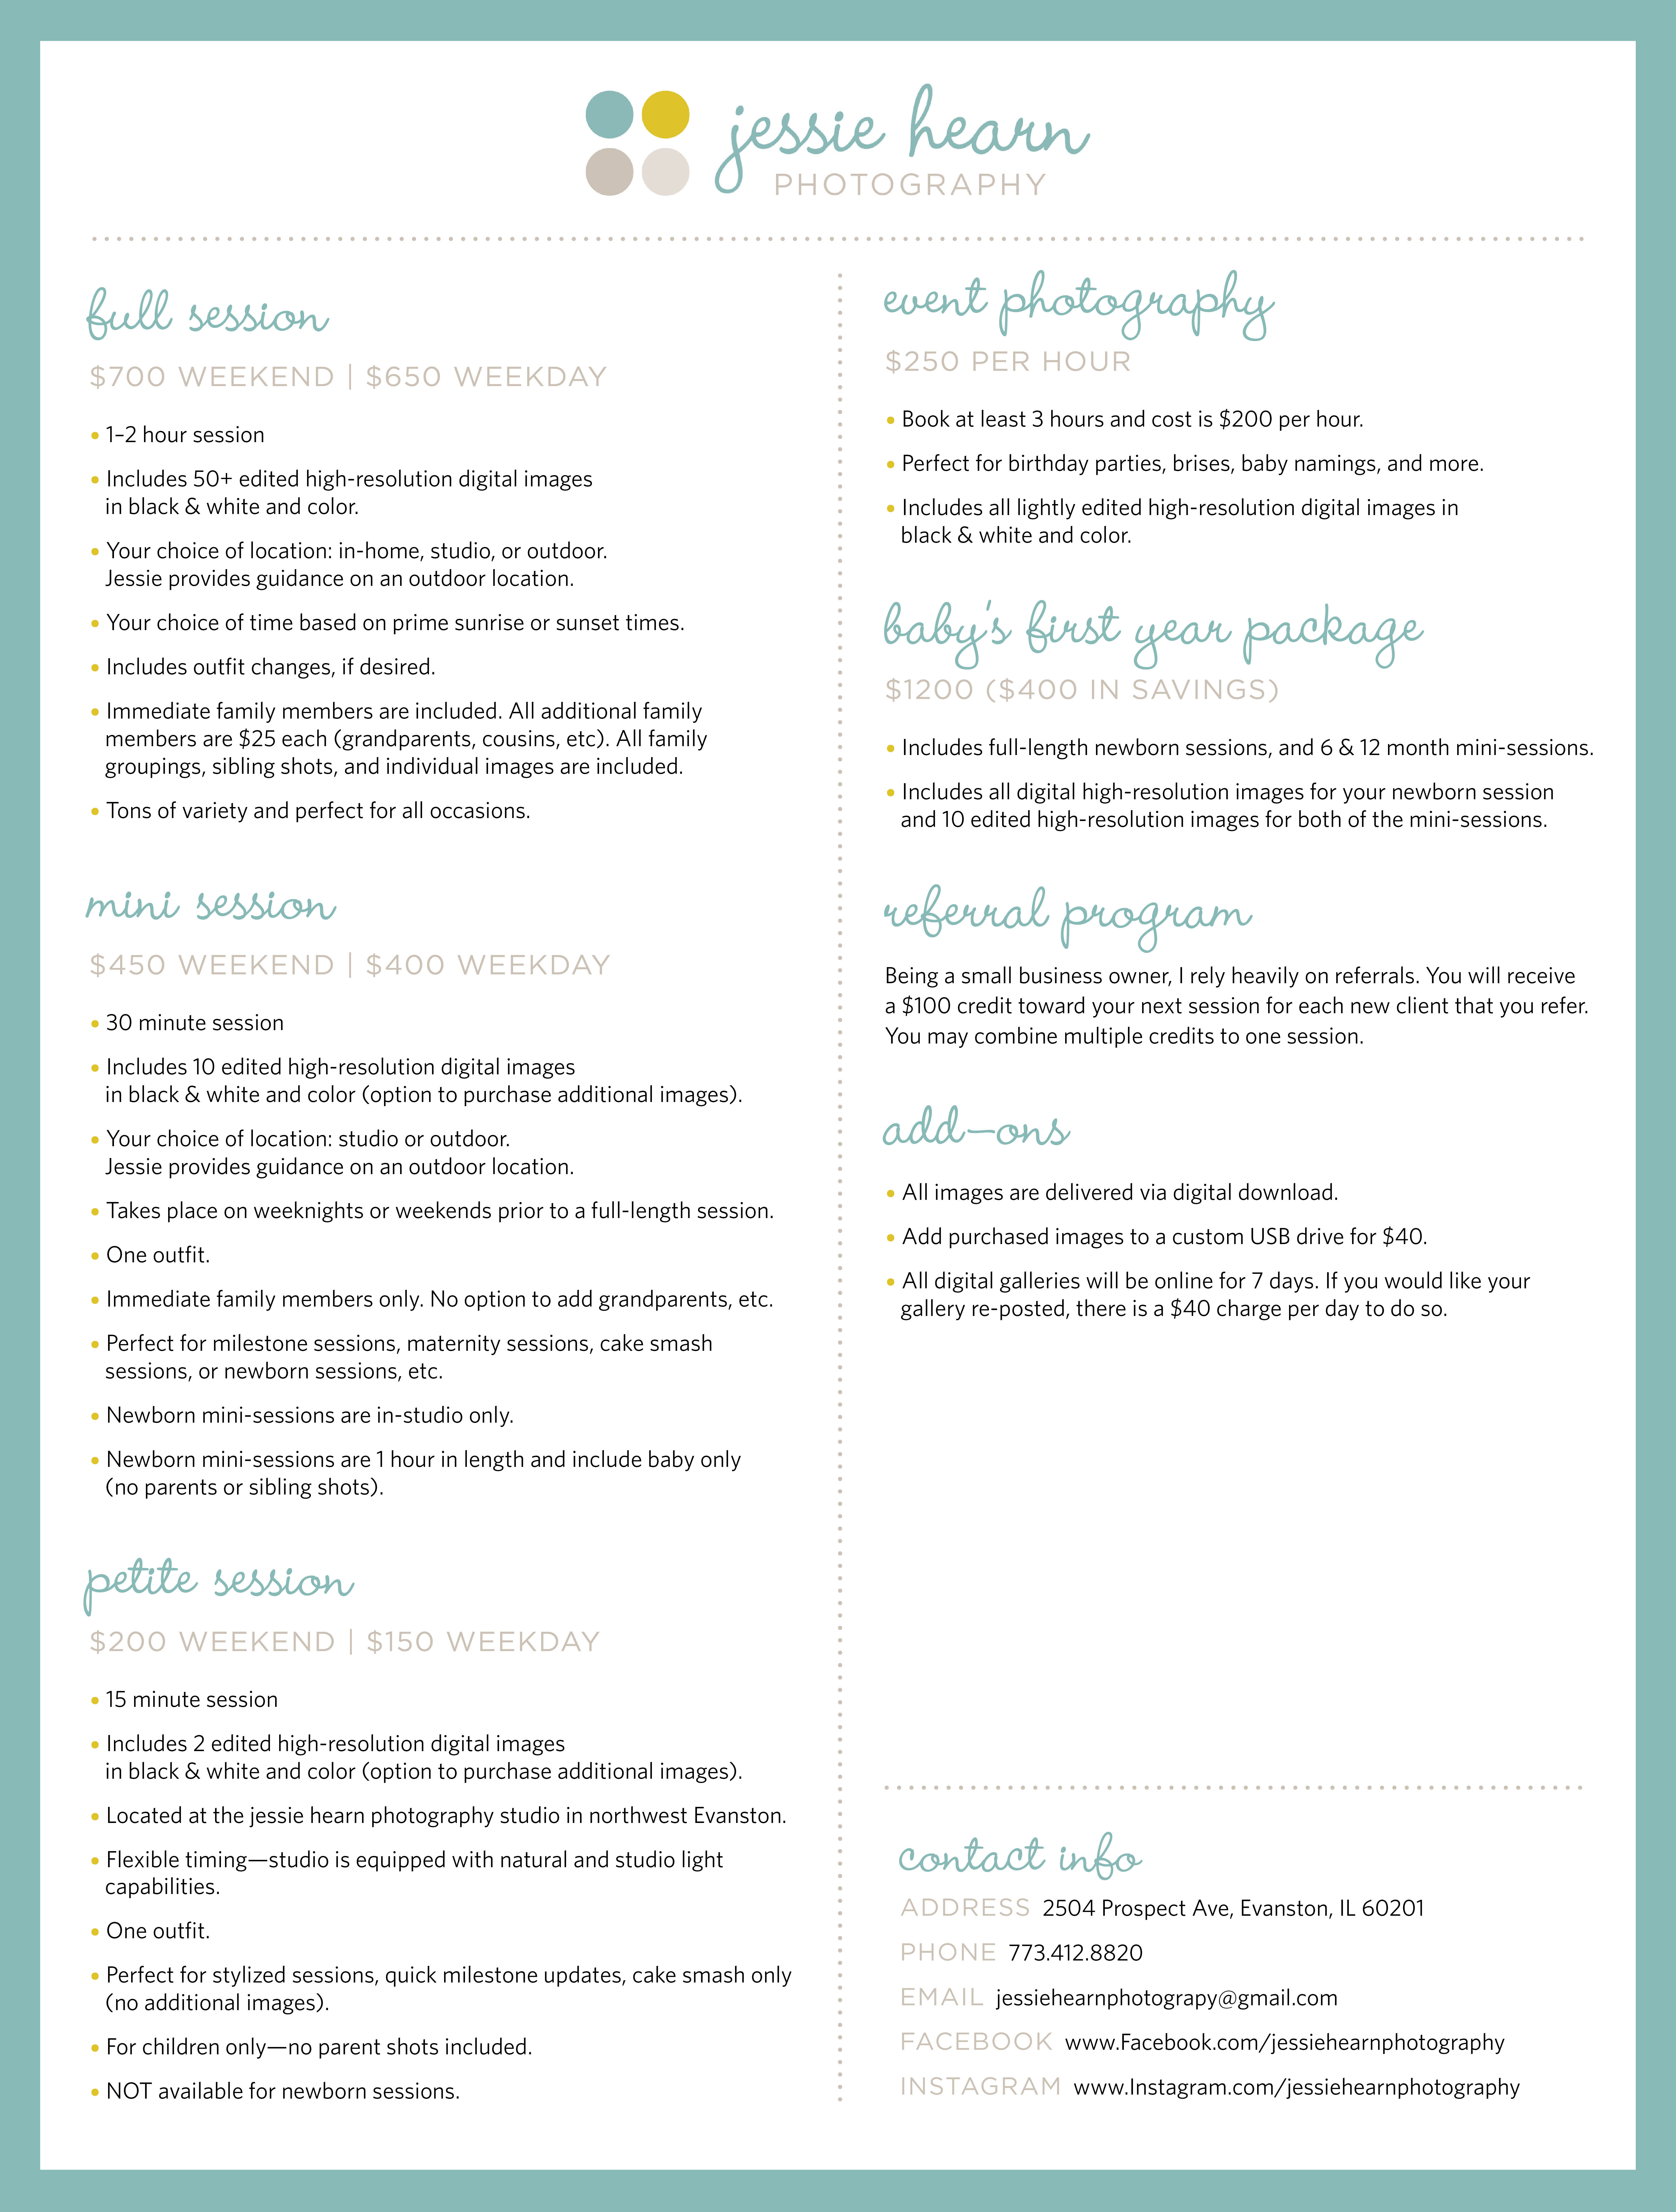 pricing sheets jessie hearn photography